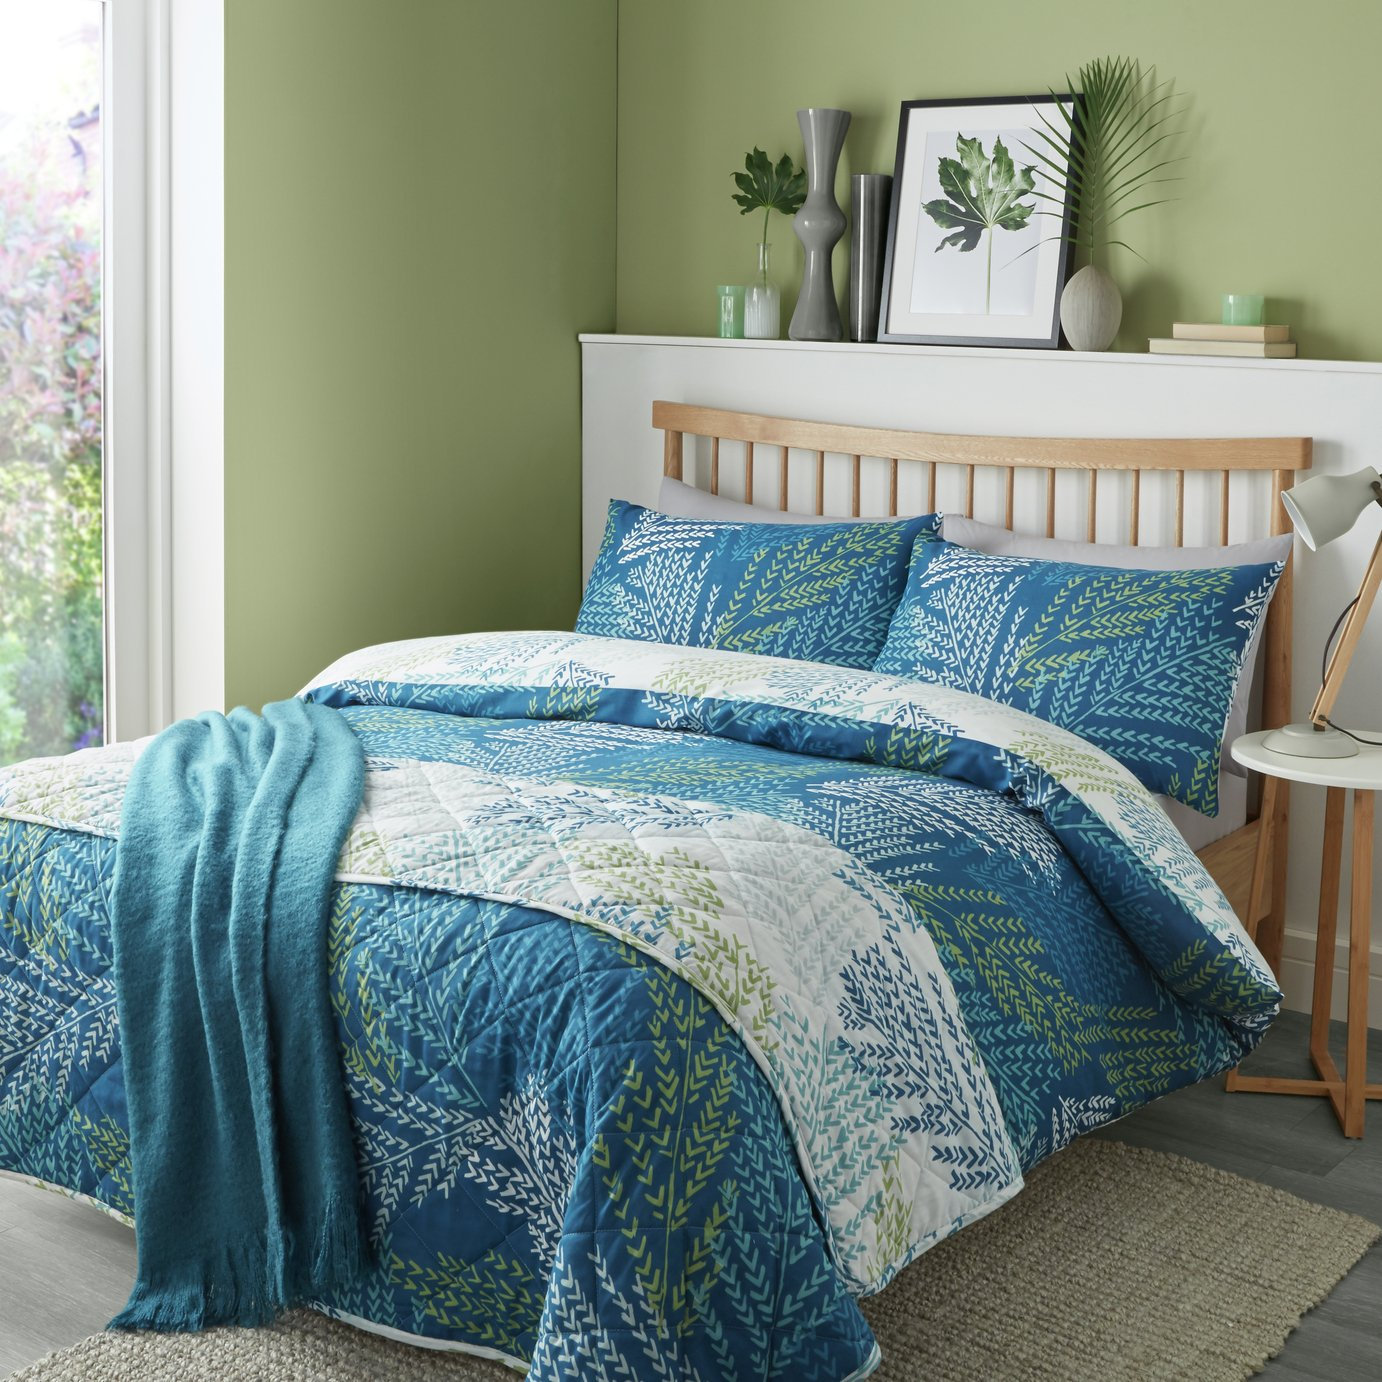 Image of Fusion Alena Teal Bedding Set - Double